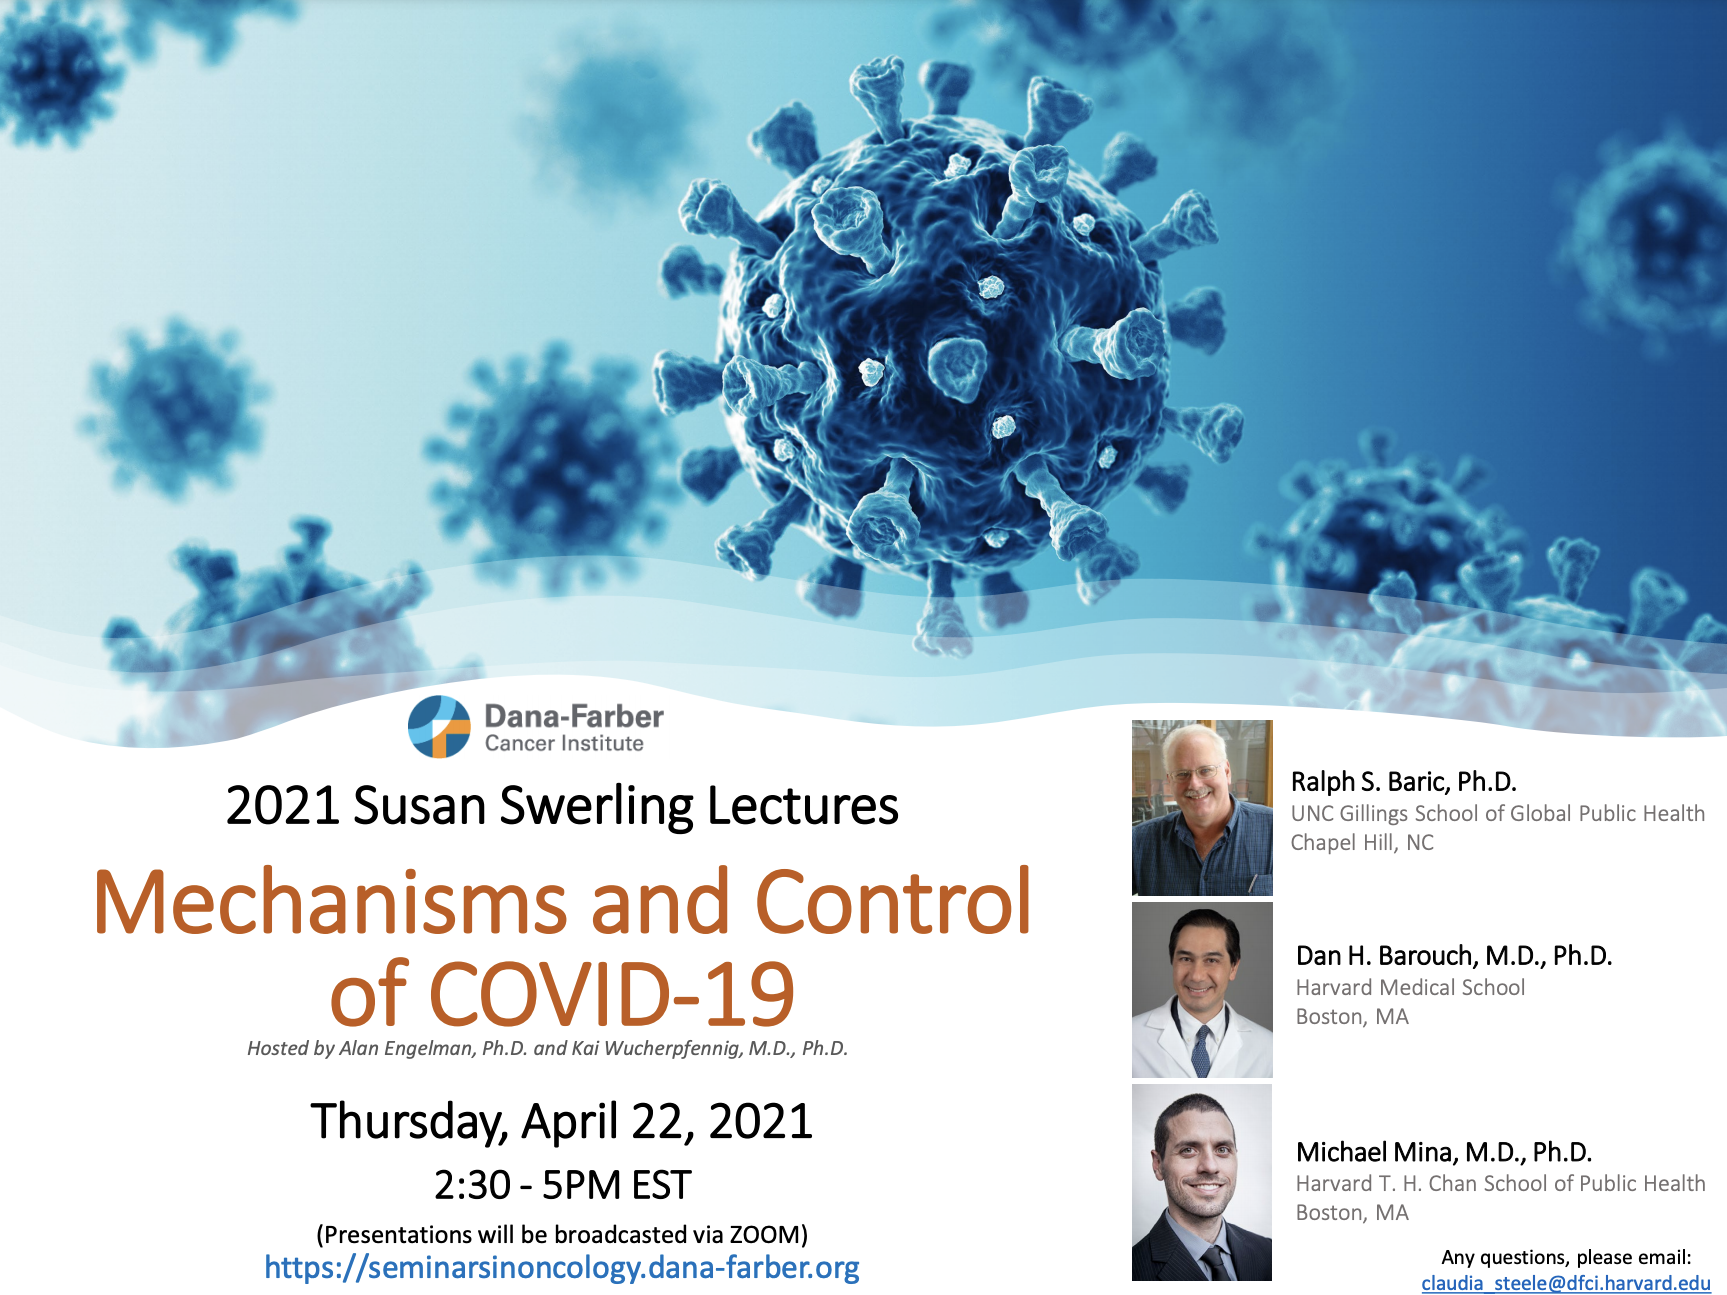 COVID-19 particles and seminar title